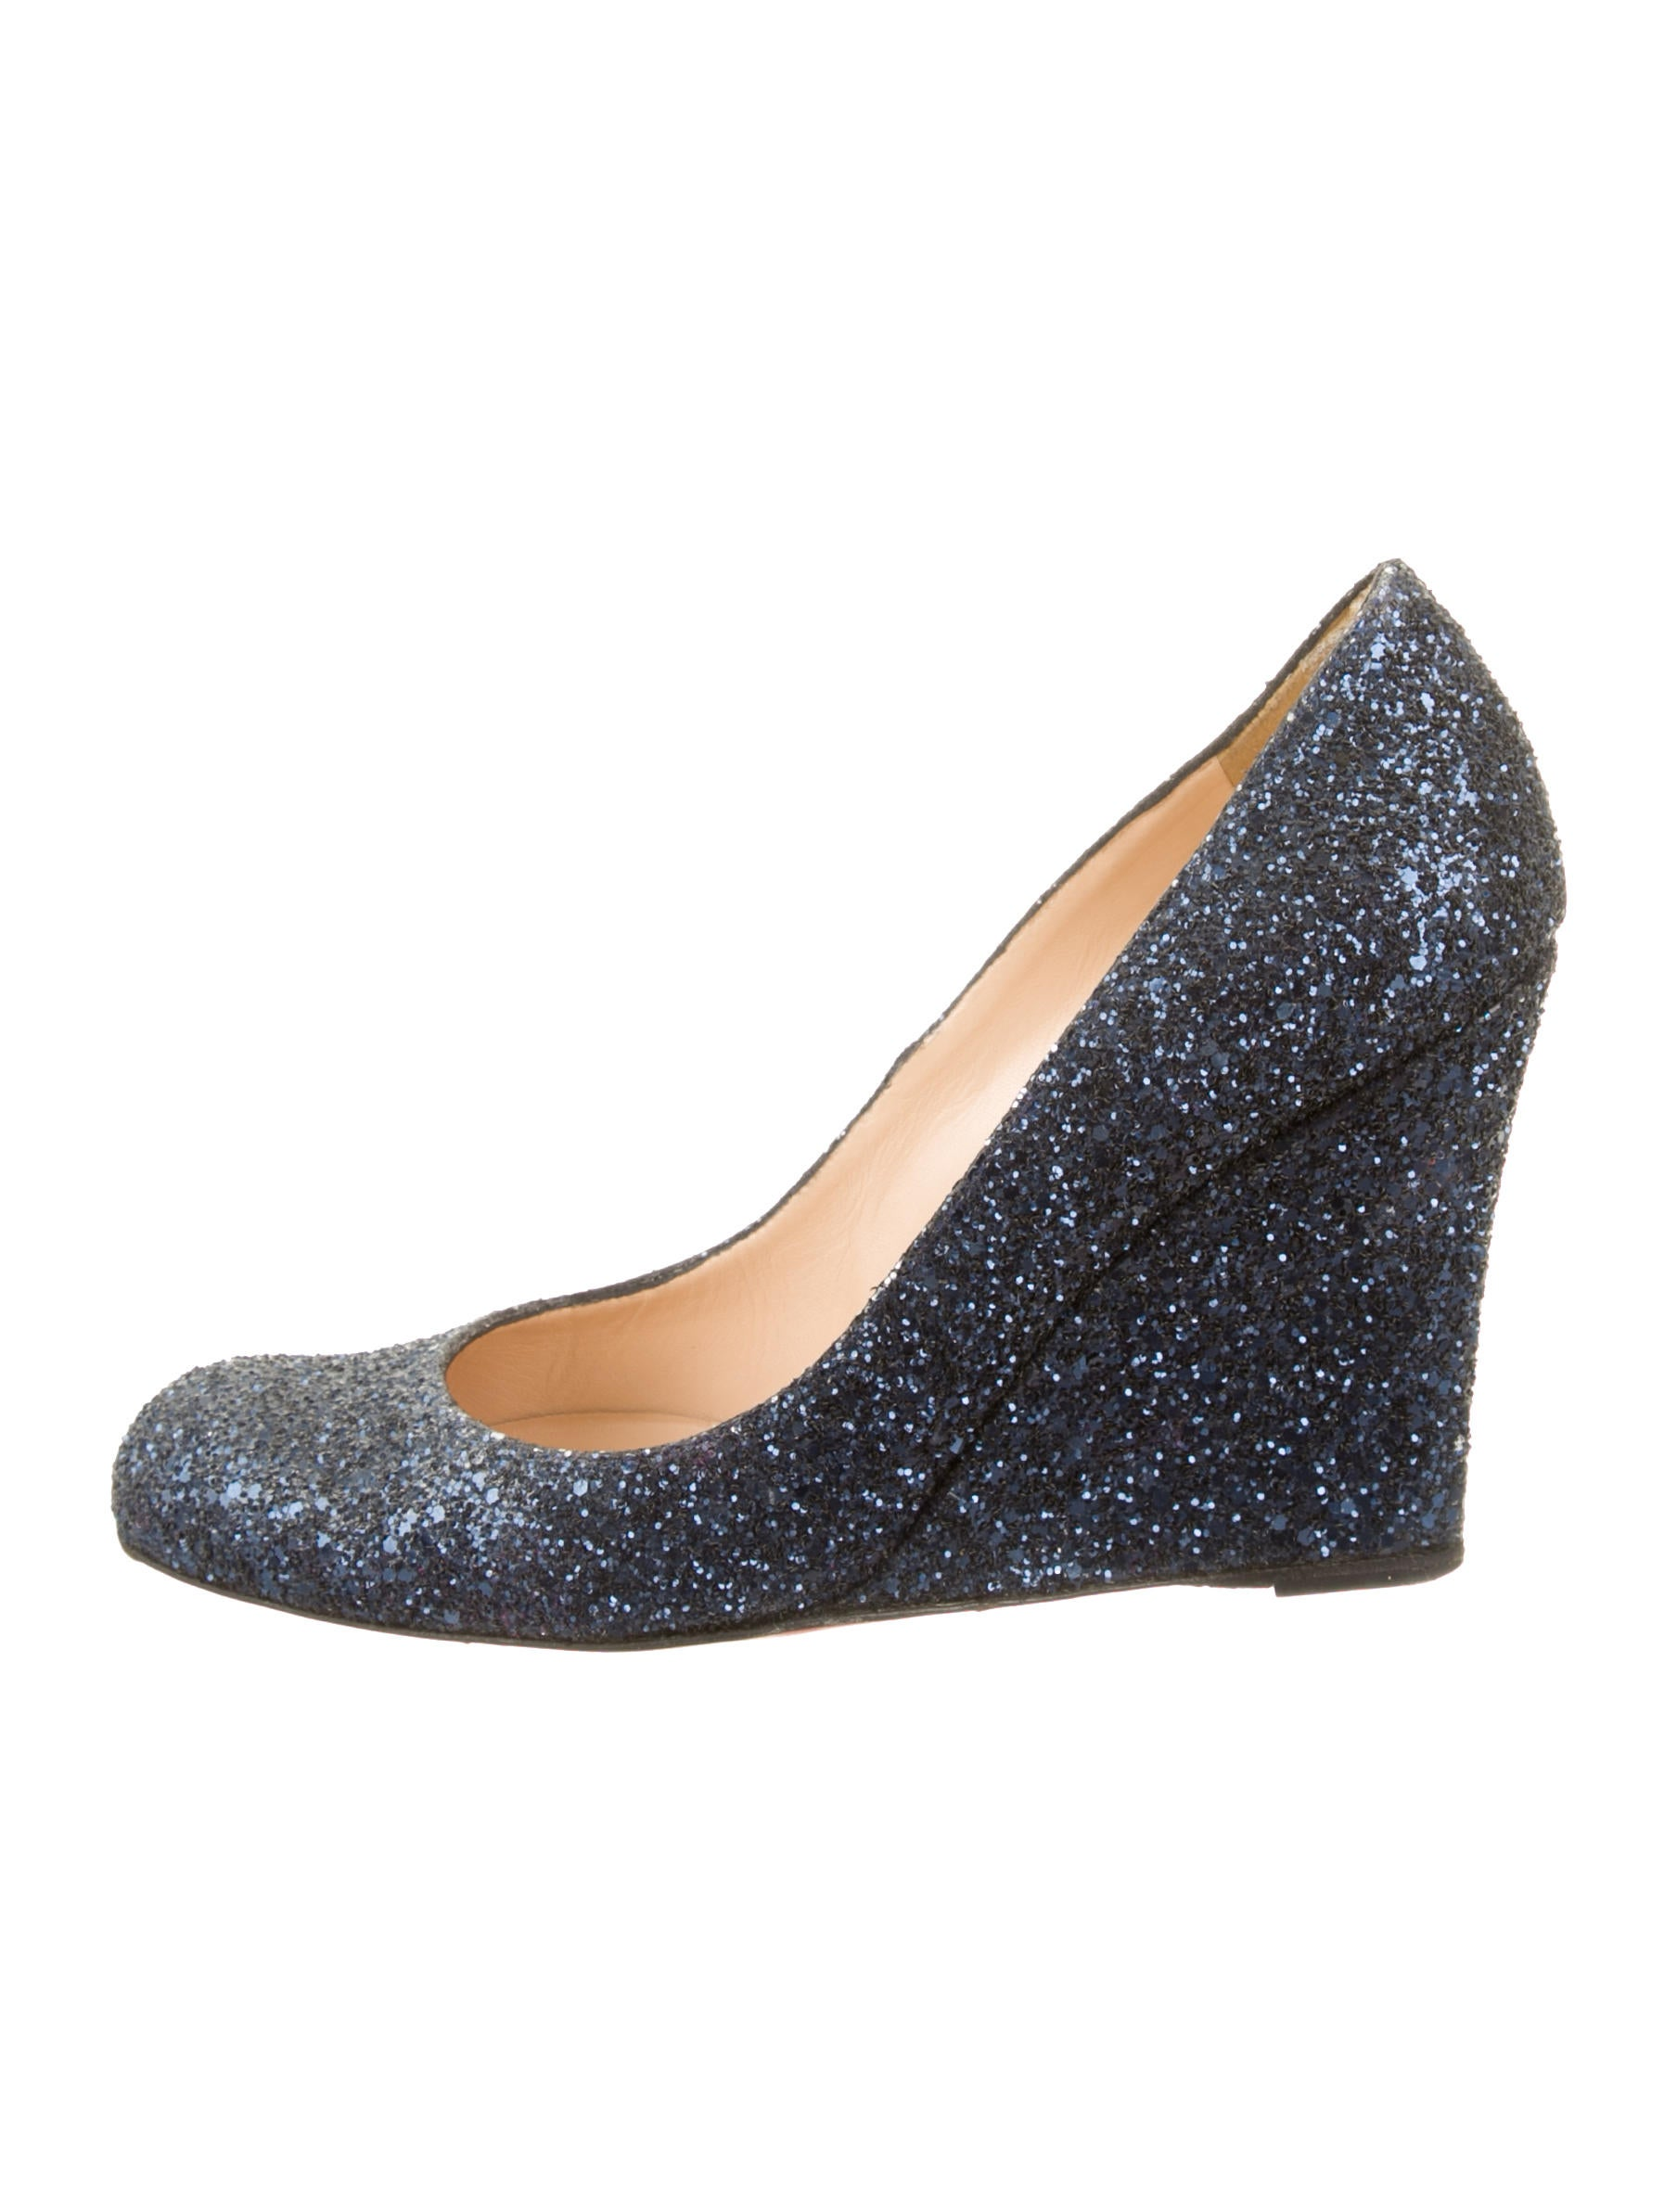 christian louboutin glitter wedges shoes cht38396